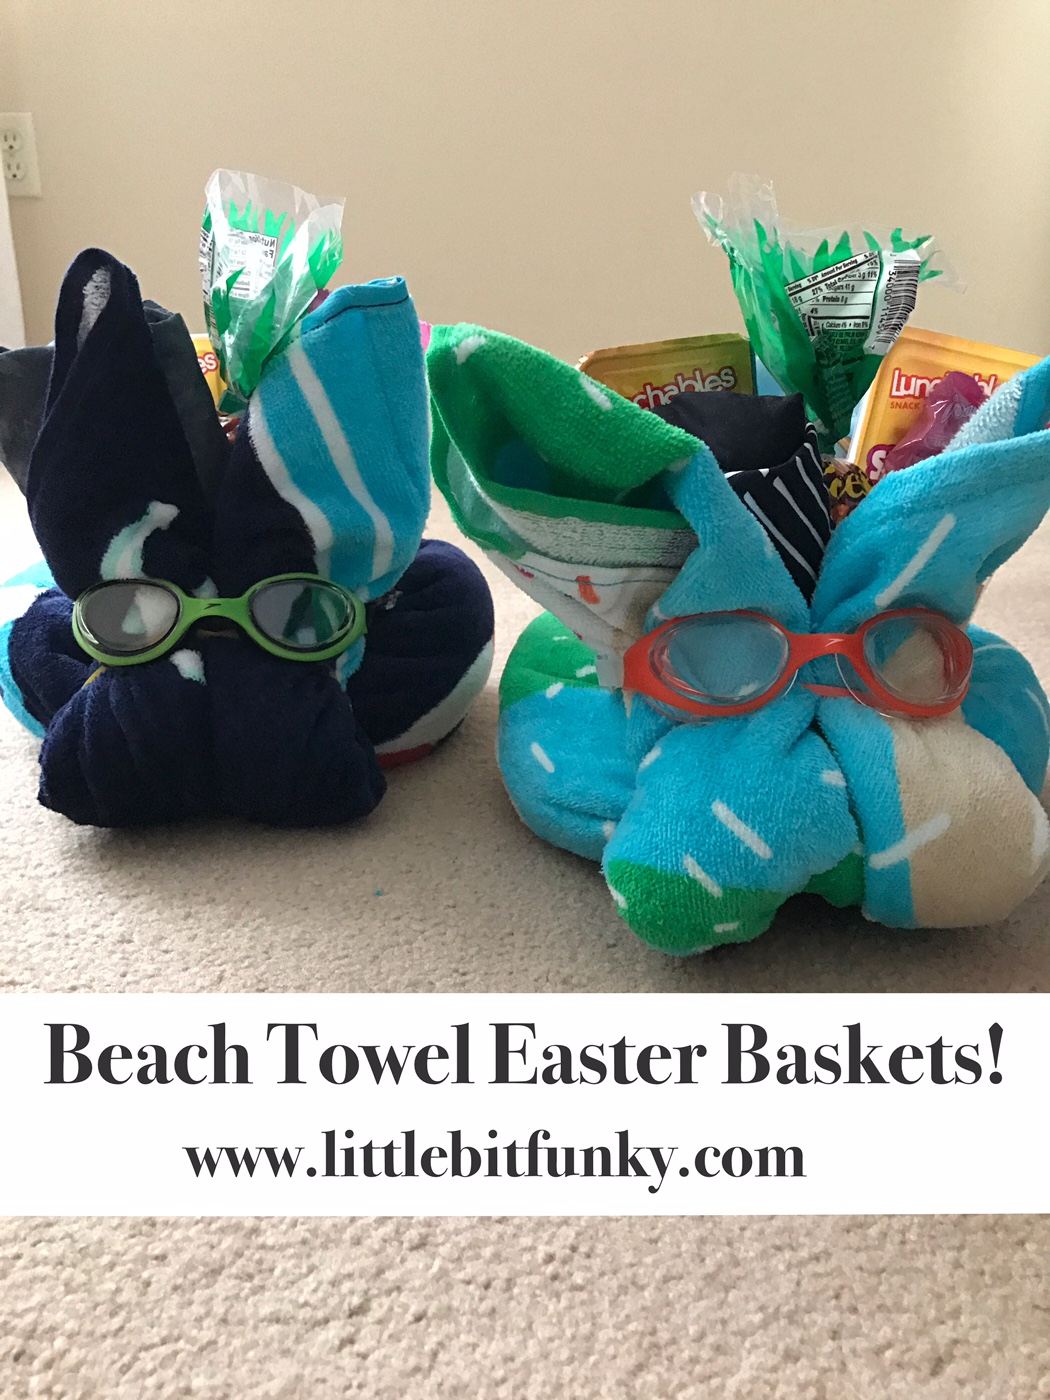 Beach Towel Basket